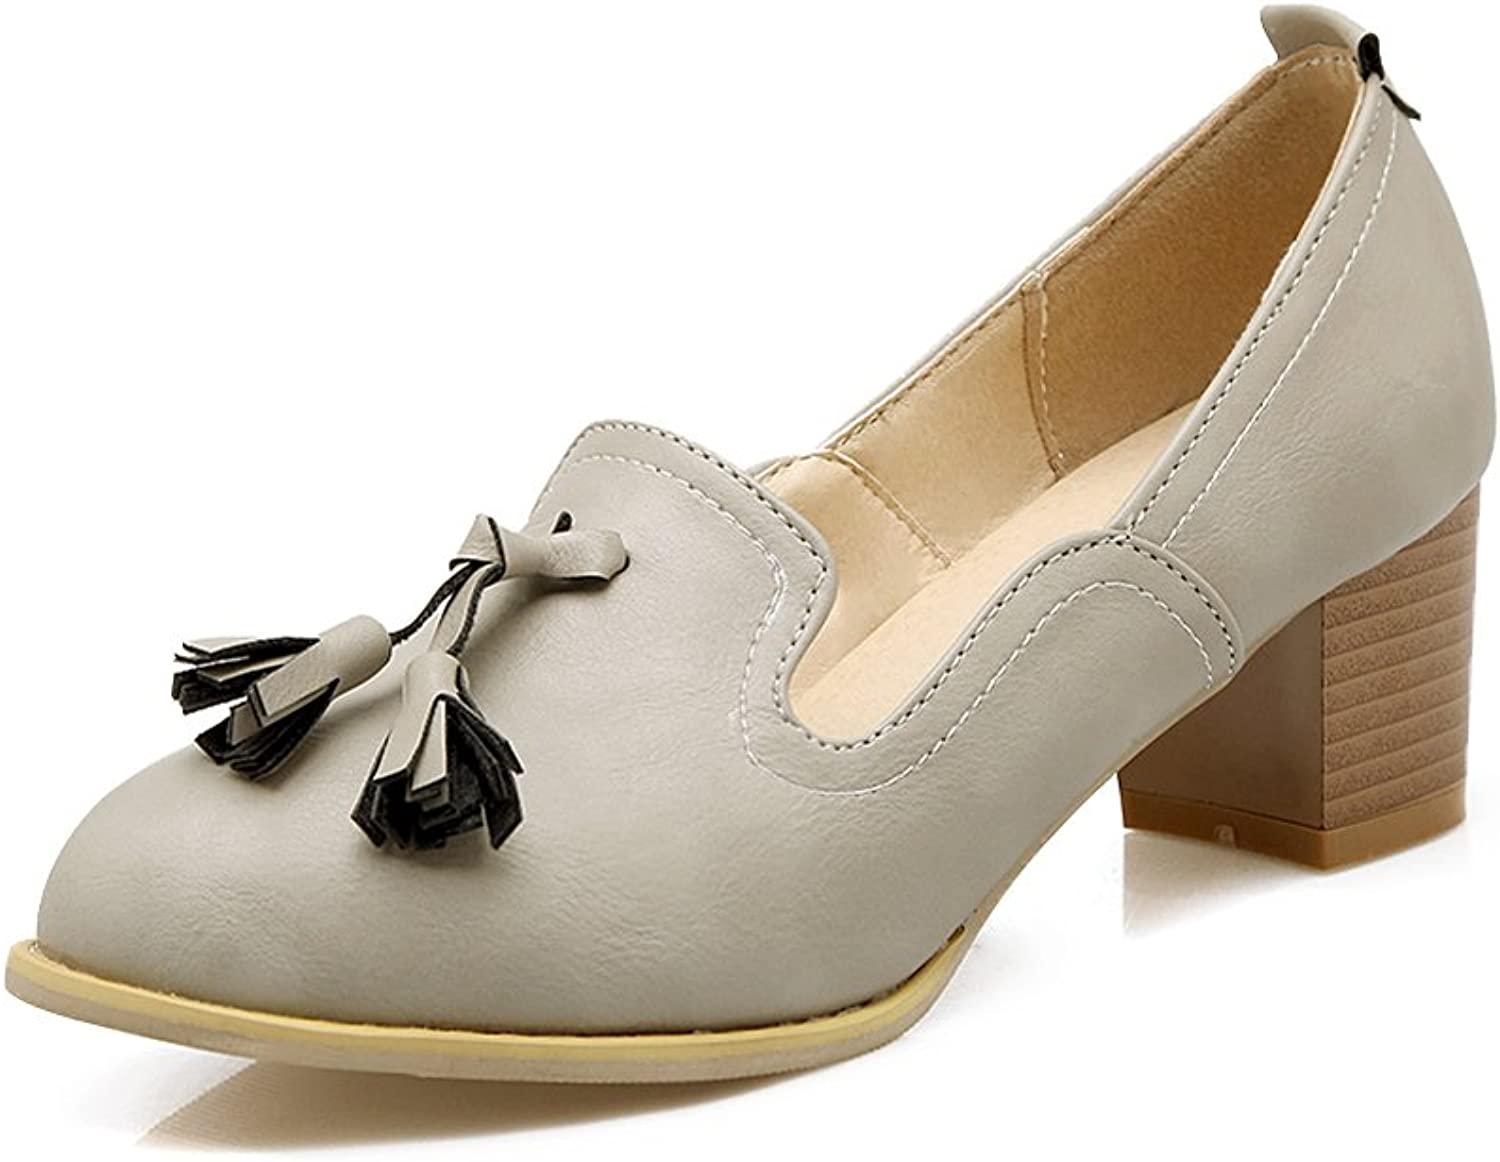 Lucksender Womens Chunky Mid Heel Pumps shoes with Tassel